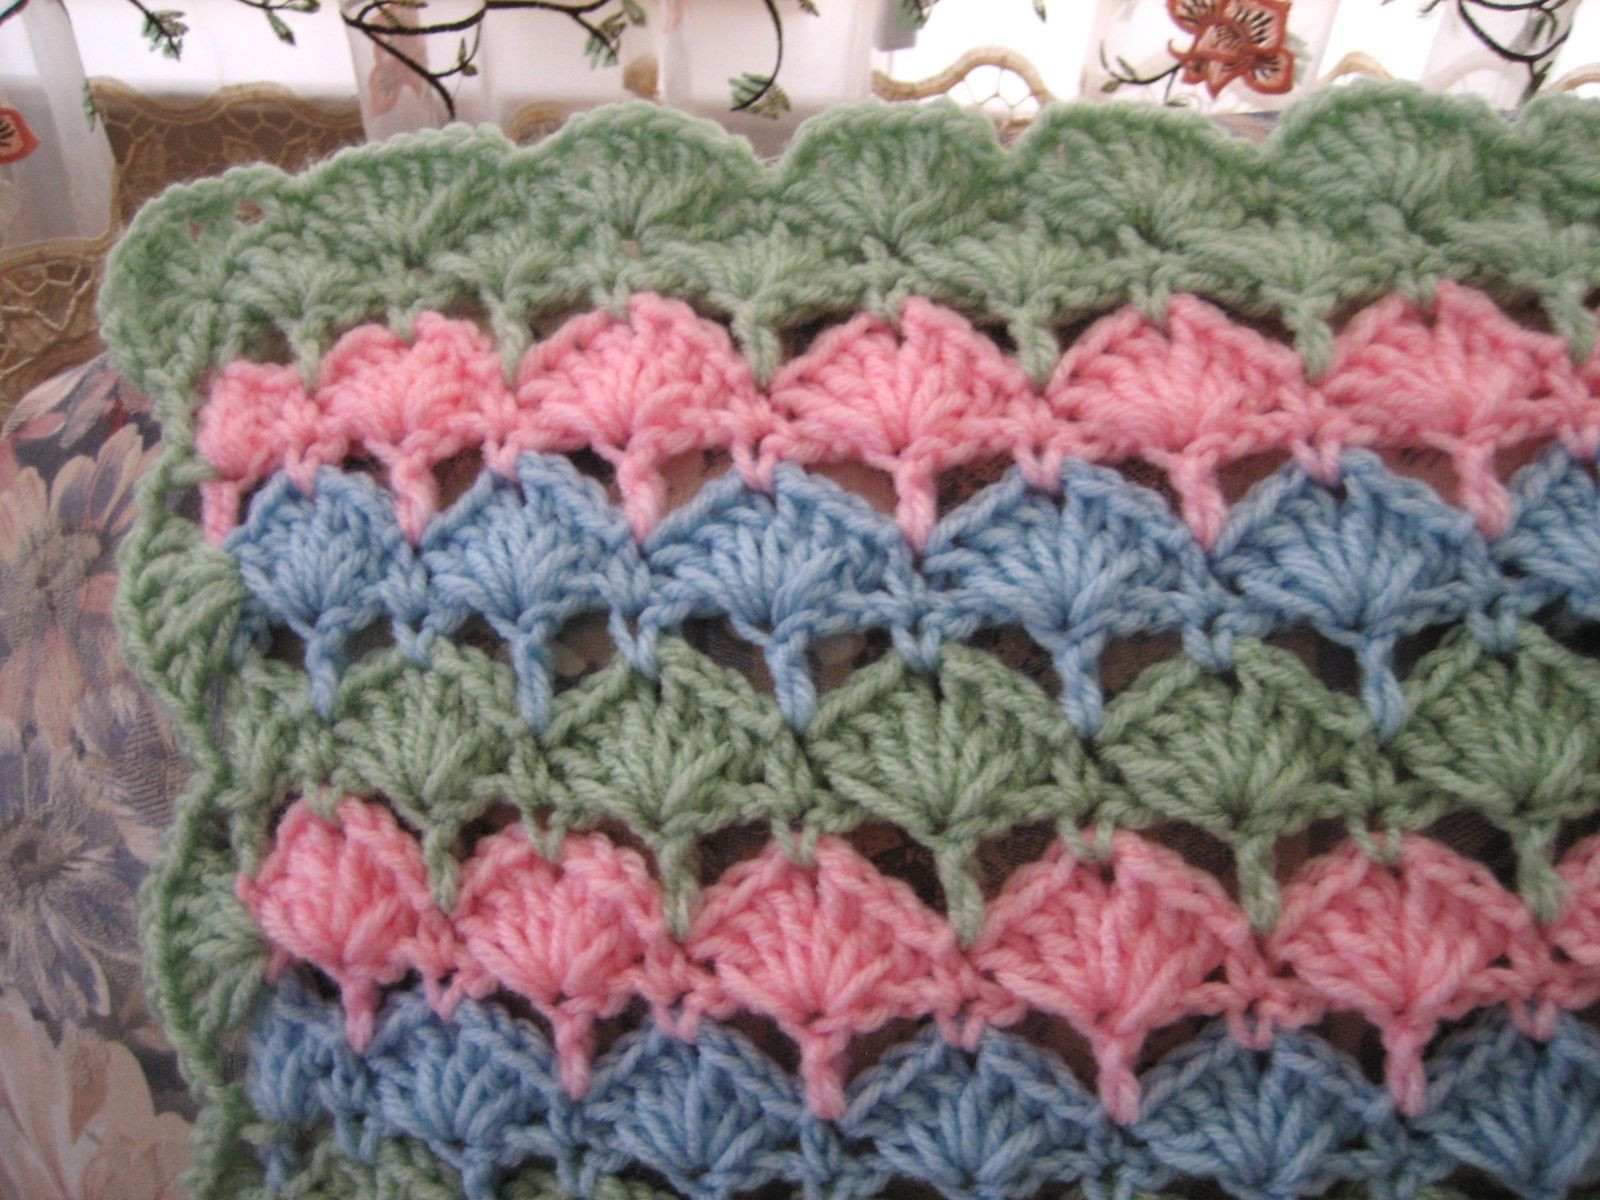 Lovely She Sells Seashells Afghan Shell Stitch Crochet Baby Blanket Of Amazing 49 Pictures Shell Stitch Crochet Baby Blanket